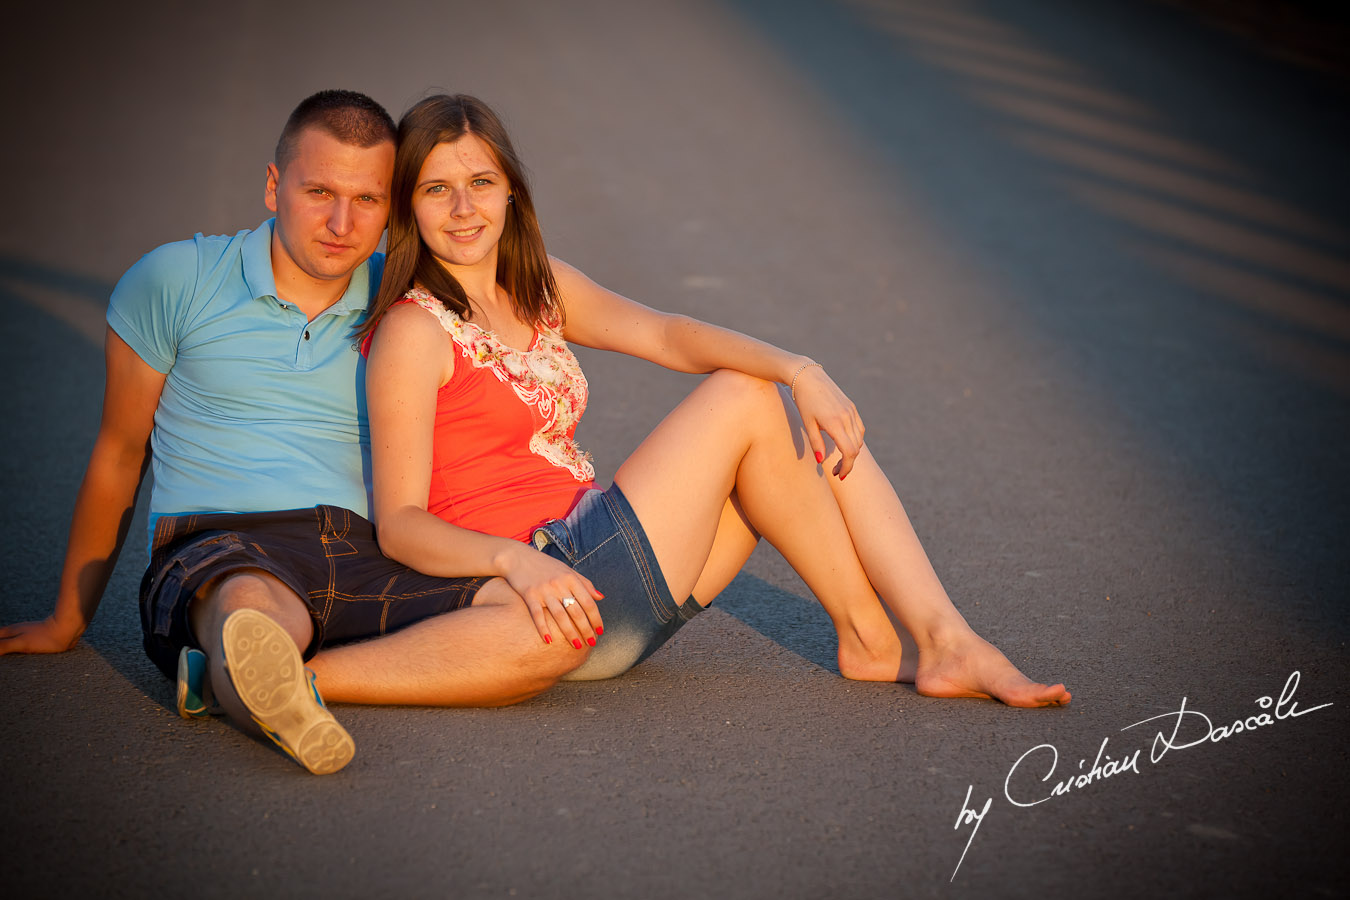 Iulian & Anca - Couple Photo Session. Cyprus Professional Photographer: Cristian Dascalu